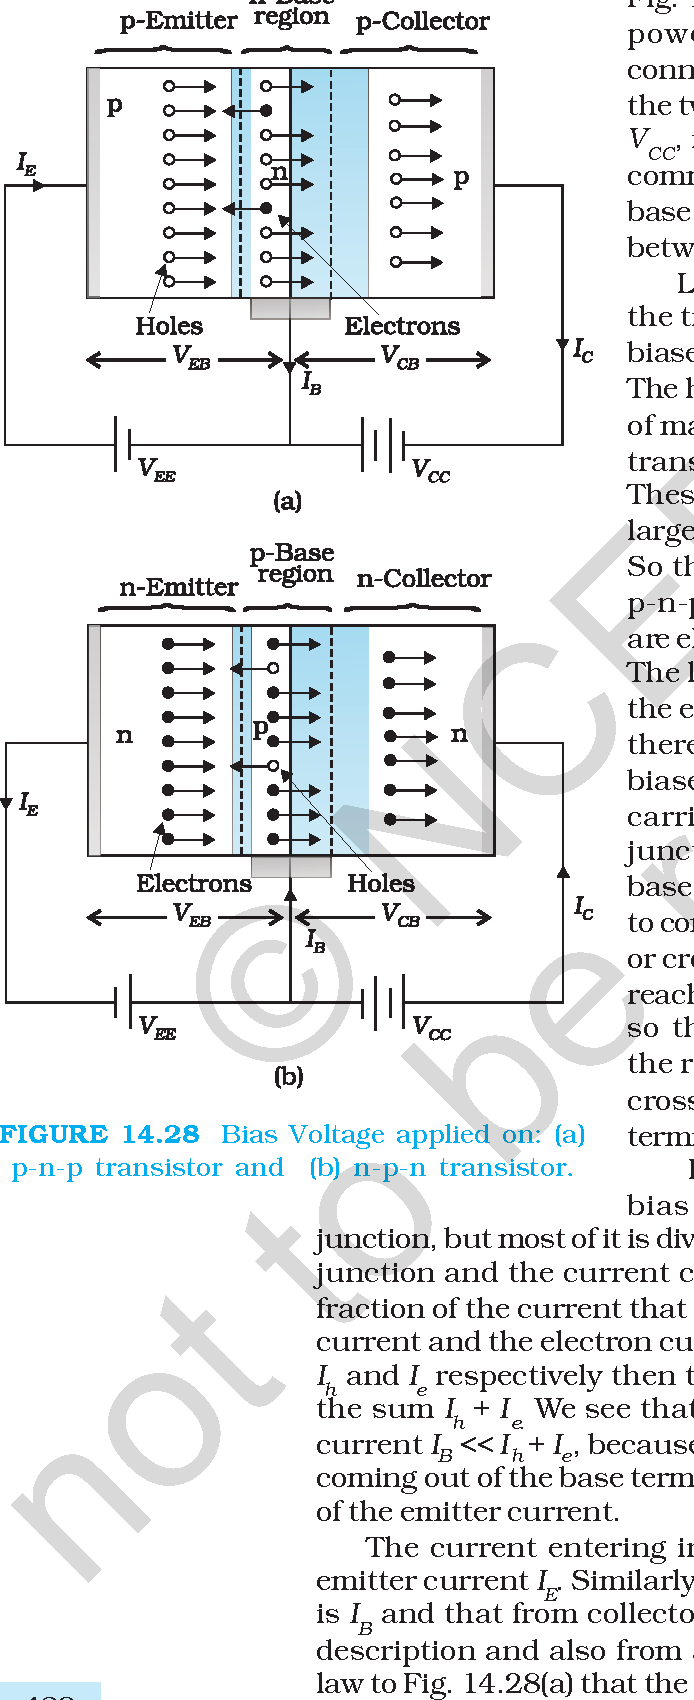 Figure 1428 From Chapter 14pmd Semantic Scholar With Solar Panel Schematic Diagram Also Npn And Pnp Transistor Bias Voltage Applied On A P N B